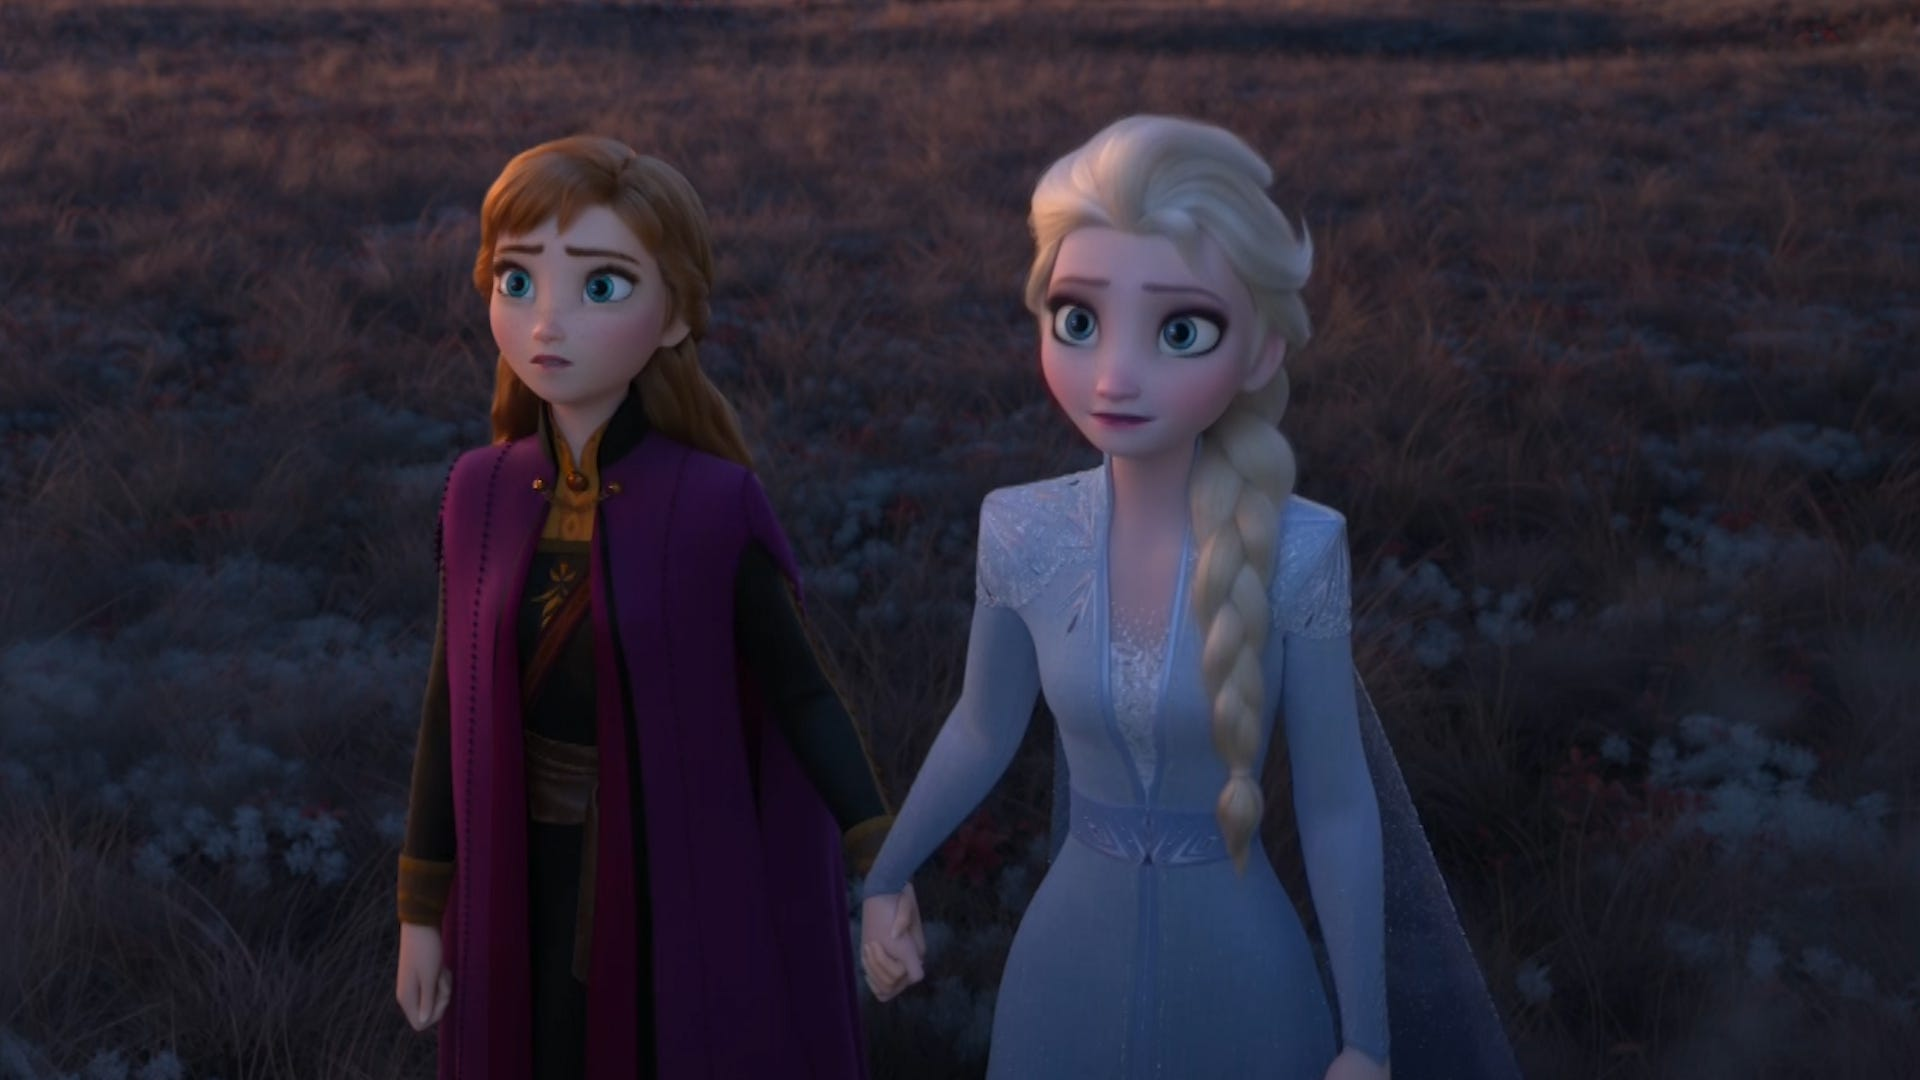 Anna and Elsa holding hands and looking into an abyss.